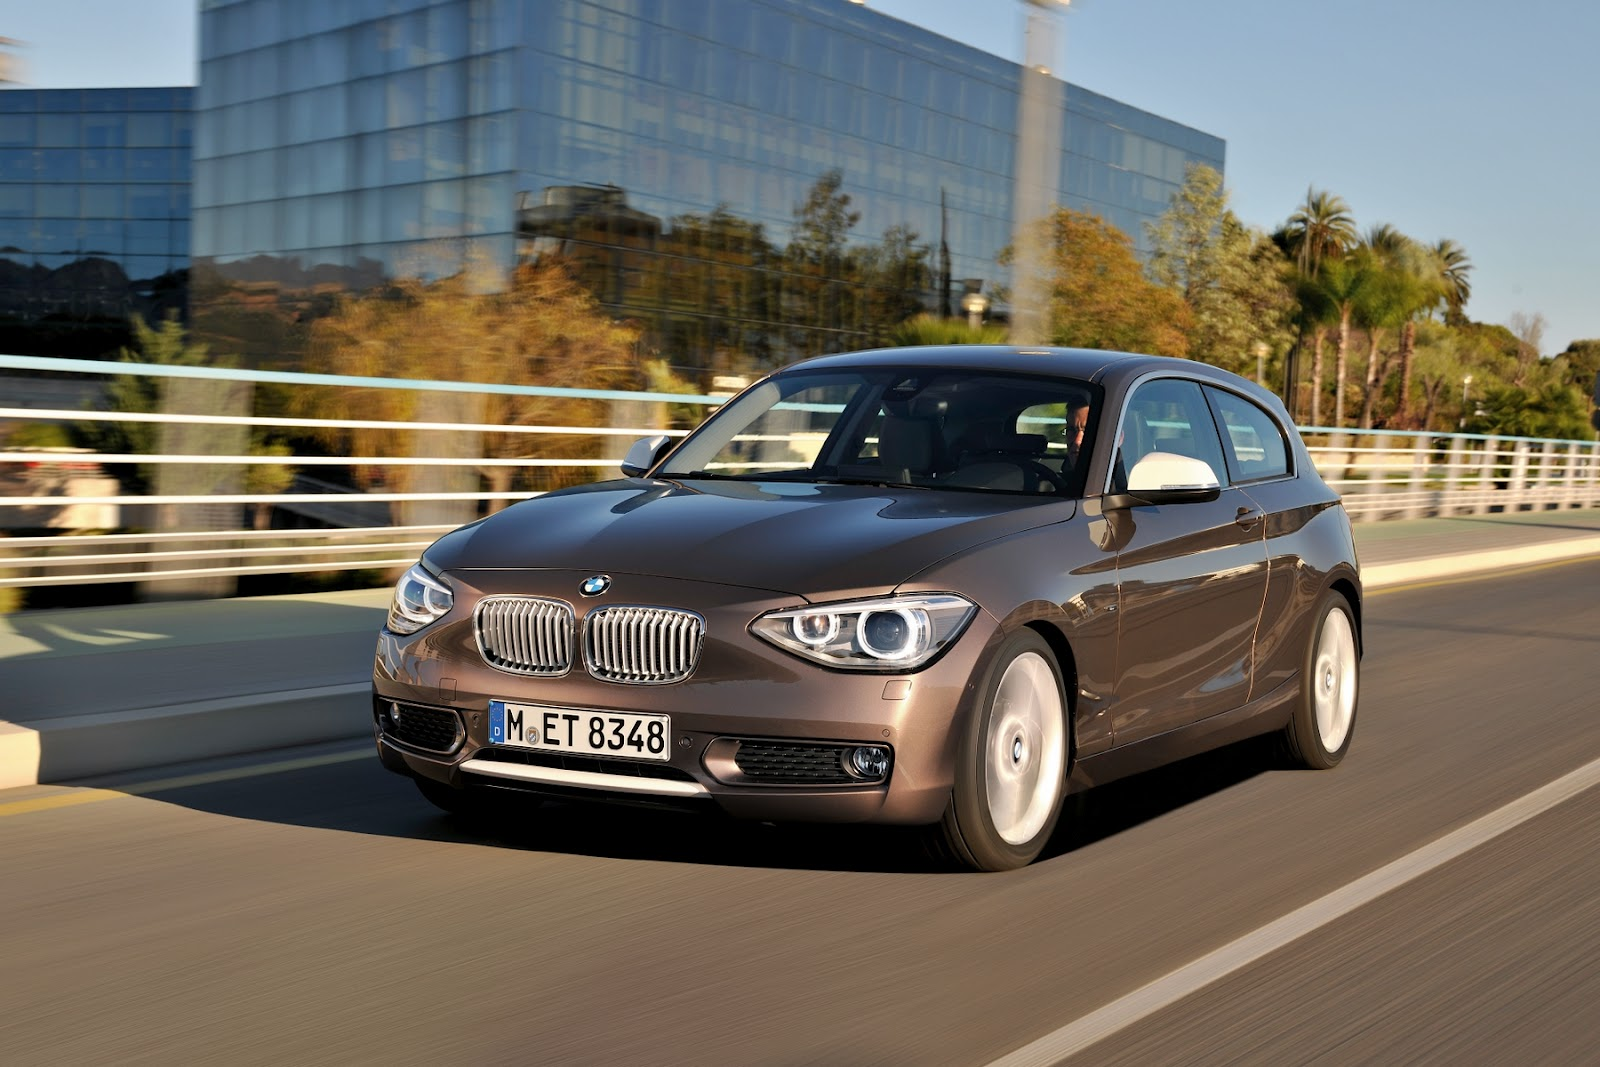 Bmw 1 series 3 door 2013 car barn sport for 135i 3 door